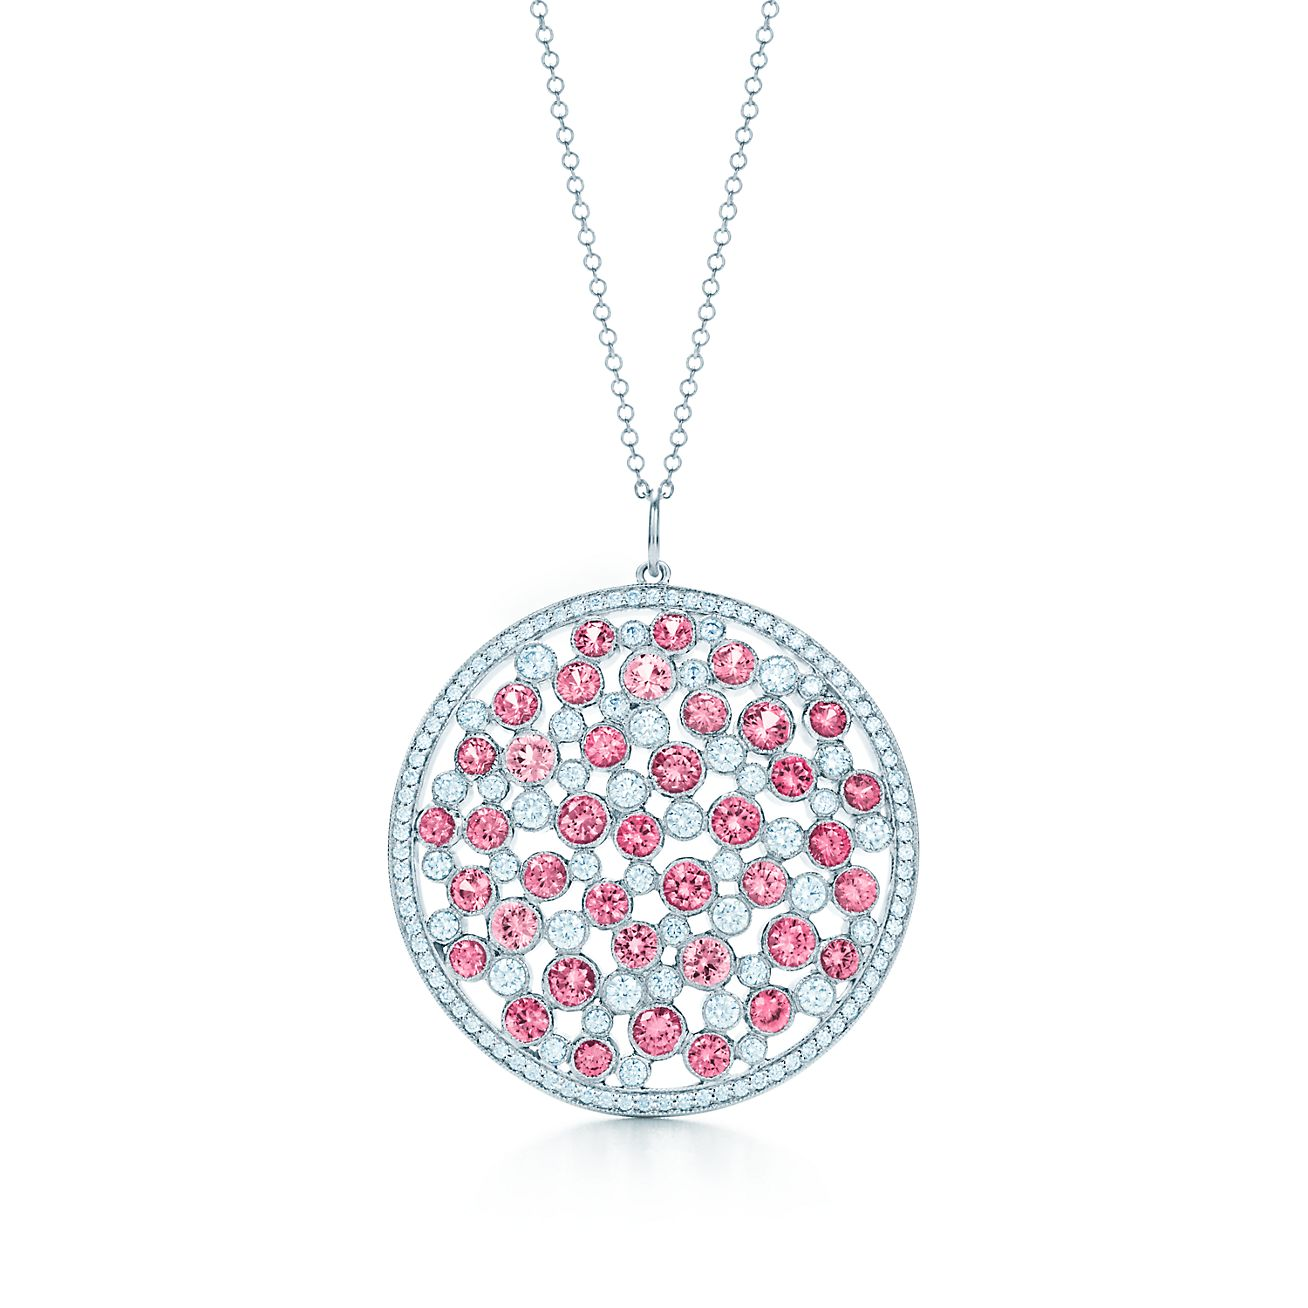 Tiffany Cobblestone Pendant In Platinum With Pink